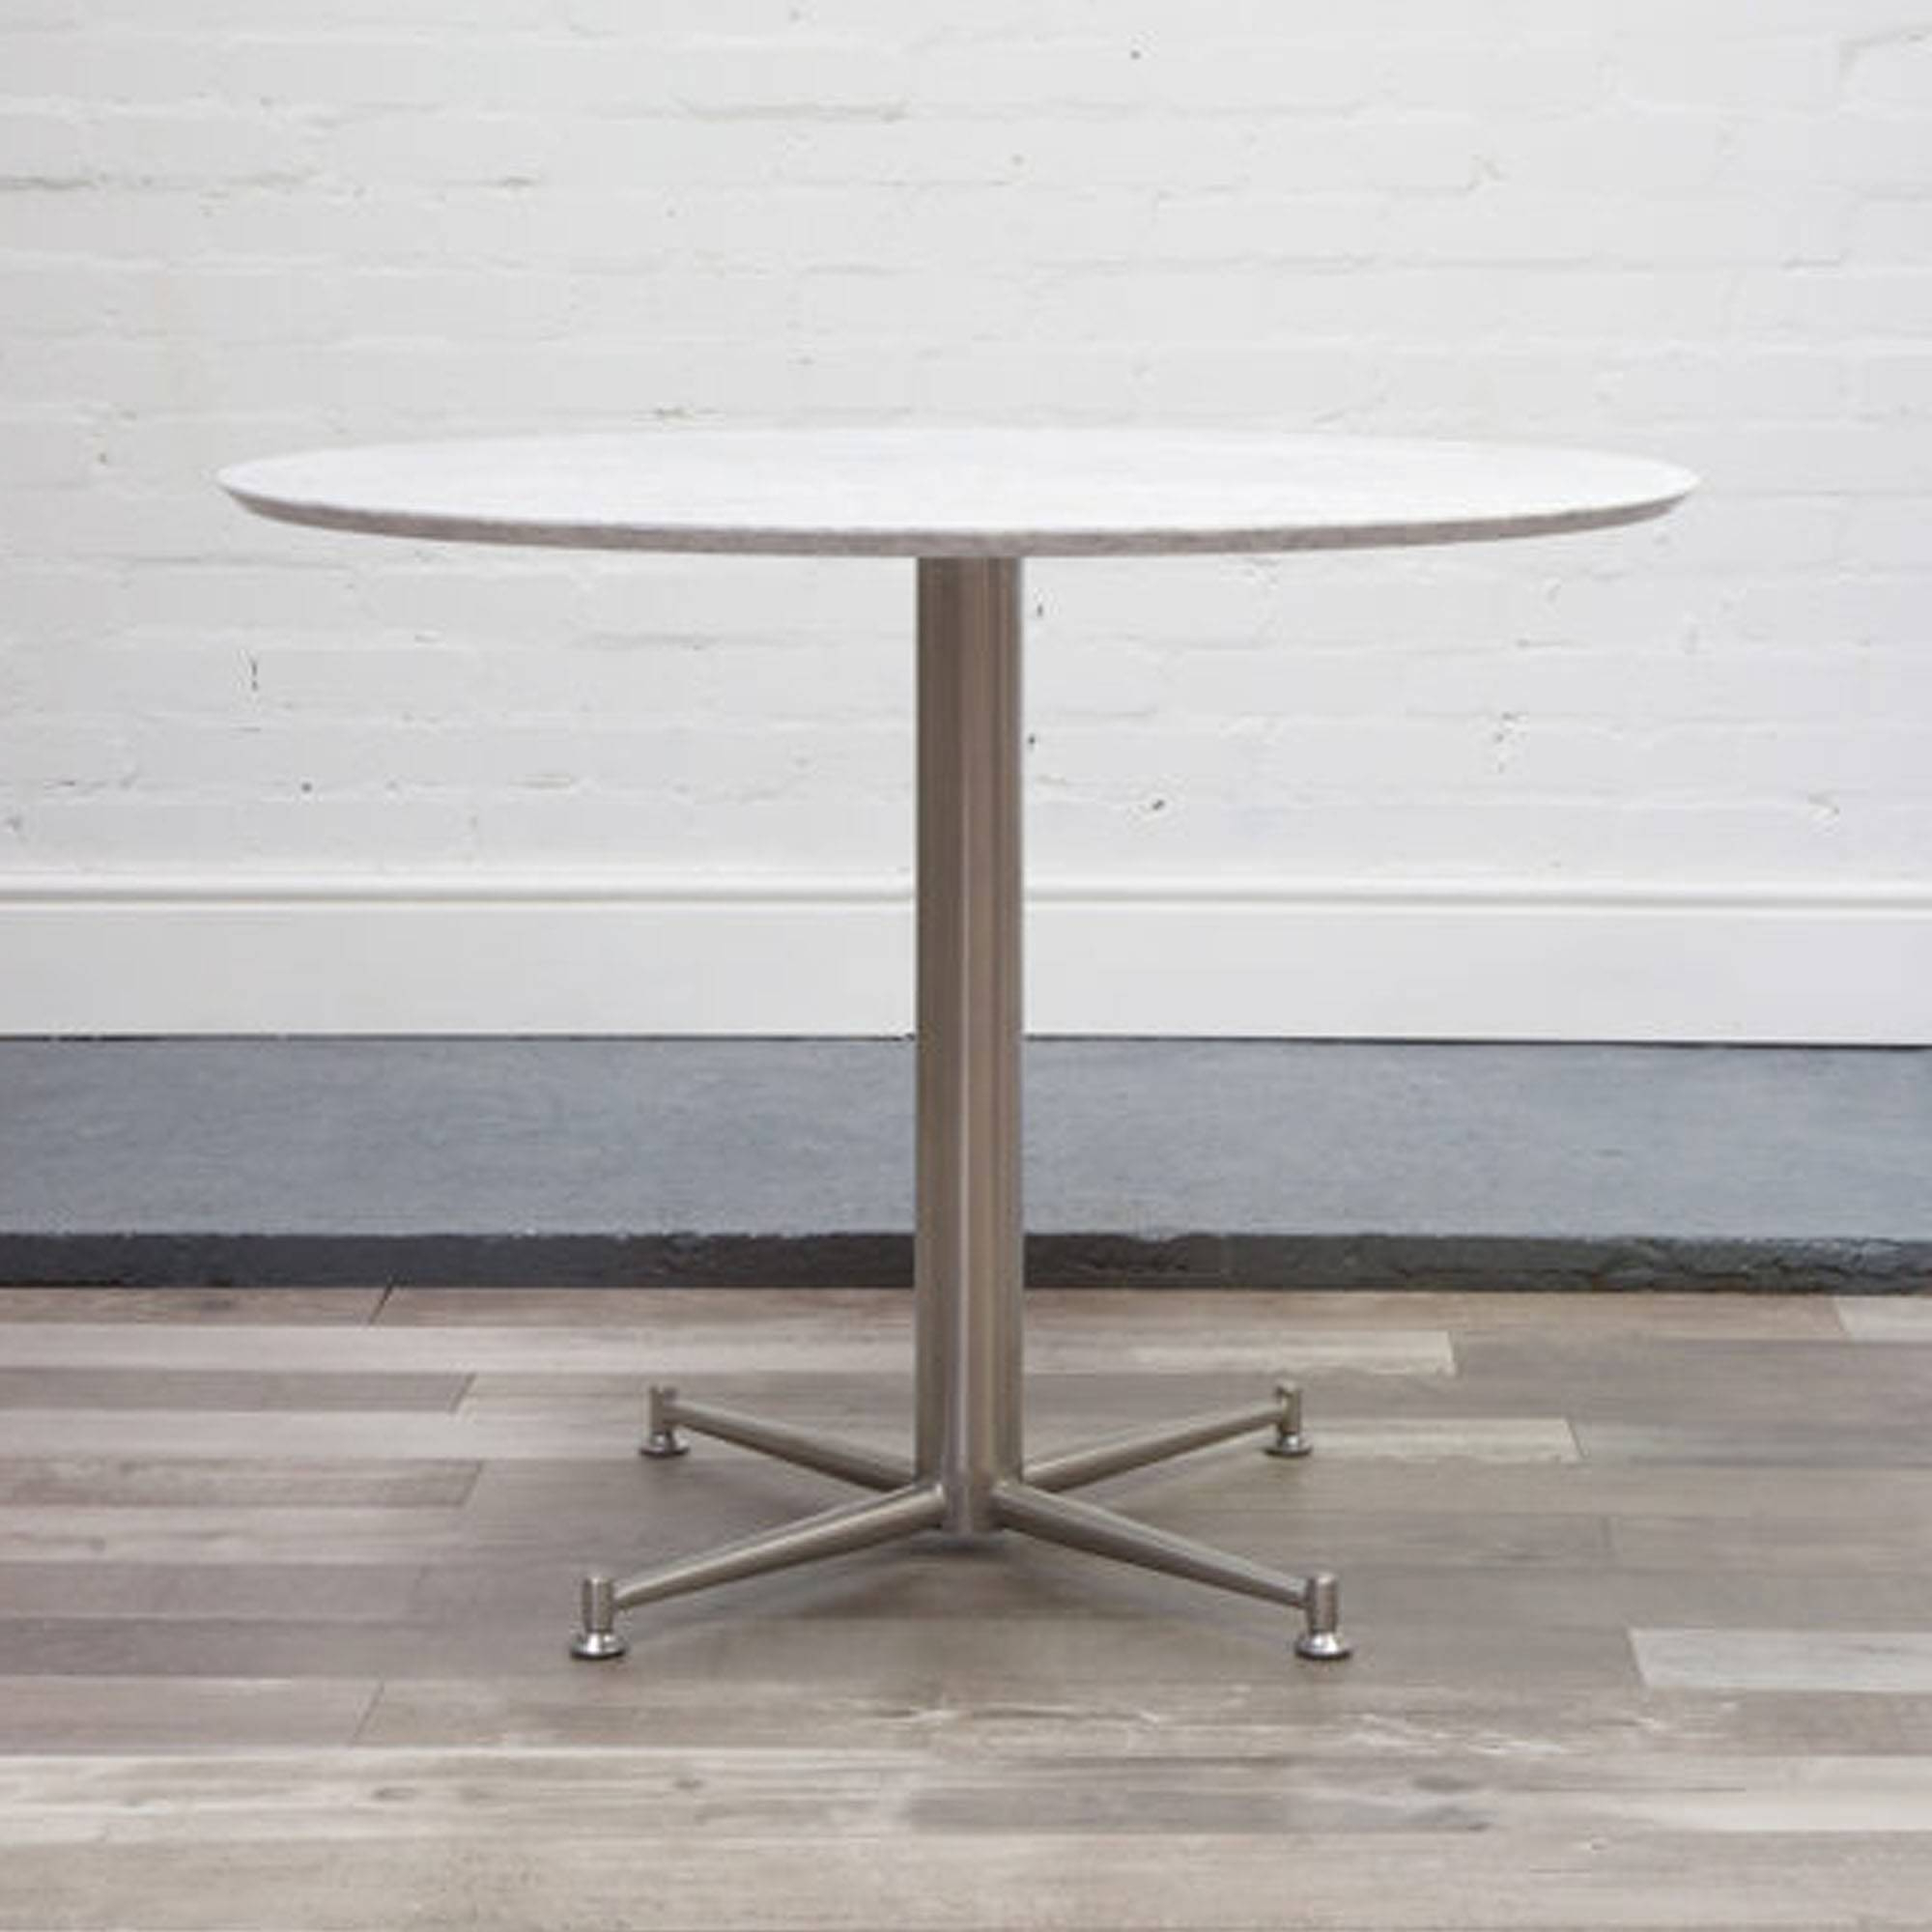 Popular Likable Round Dining Table Wood Top Splendid Furniture Room With Regard To Acacia Top Dining Tables With Metal Legs (View 20 of 25)